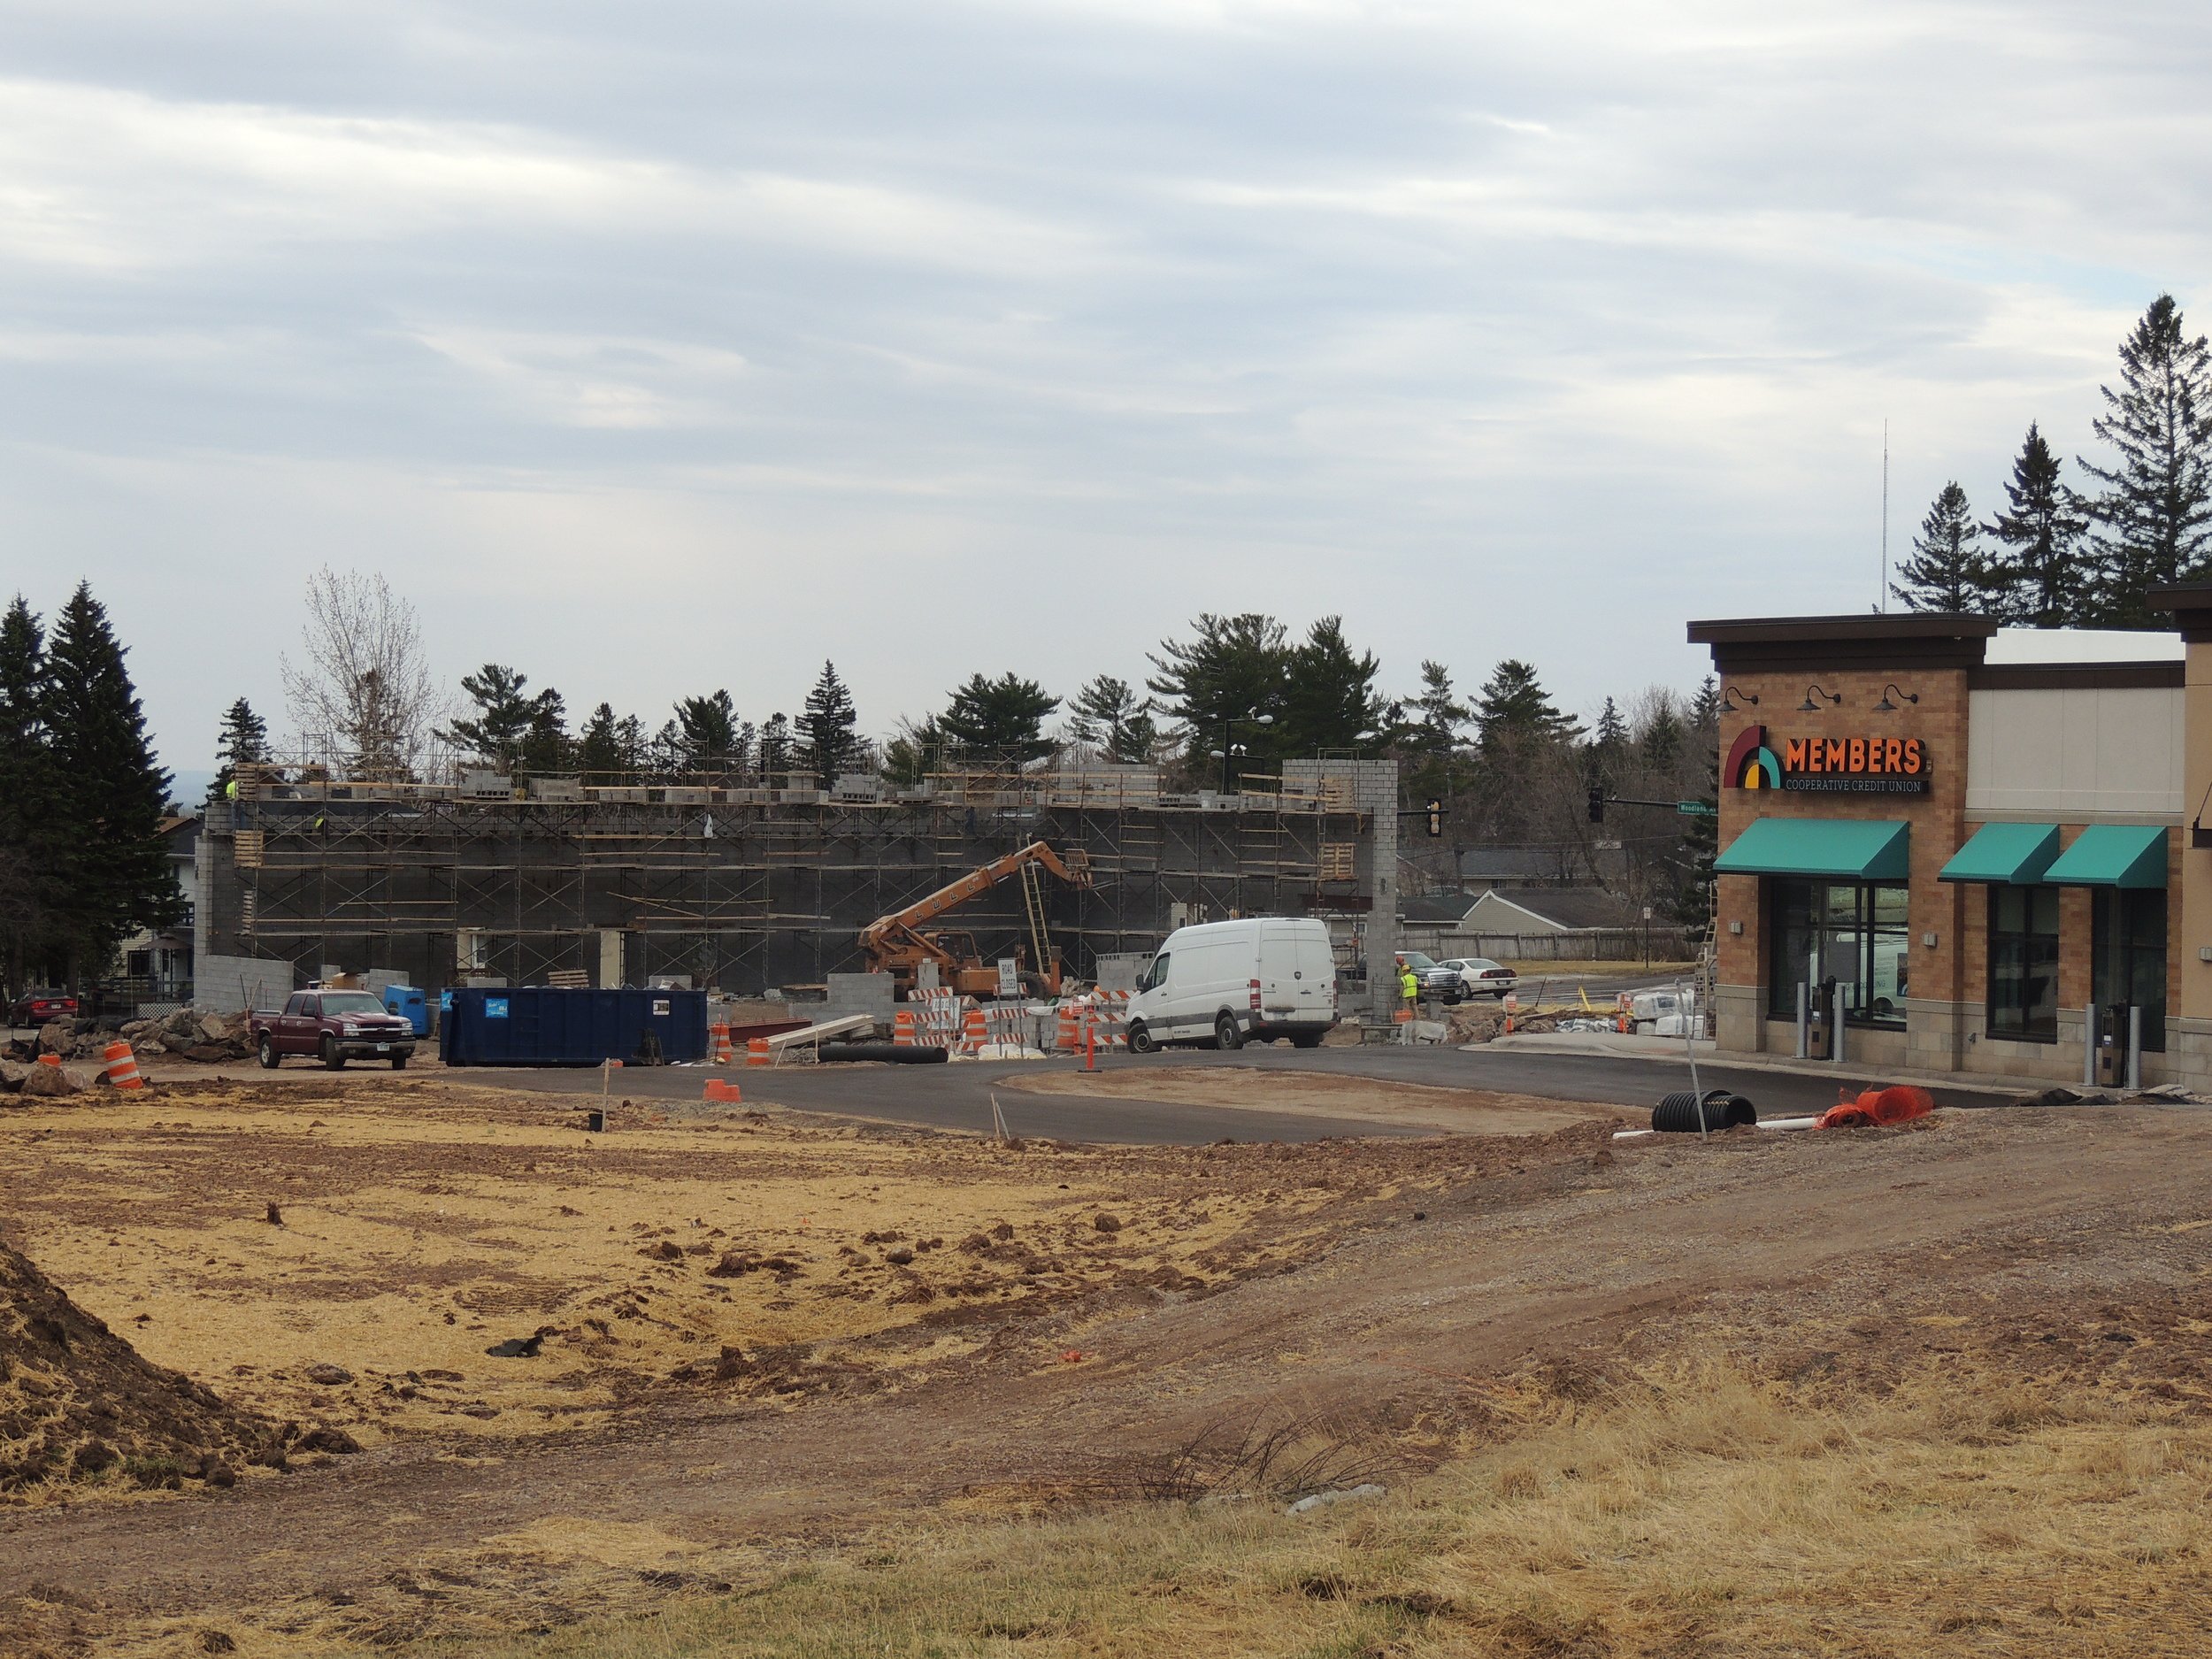 Work continues at the Shops at BlueStone. The building under construction will include a Pizza Hut | Wing Street location along with additional tenant.